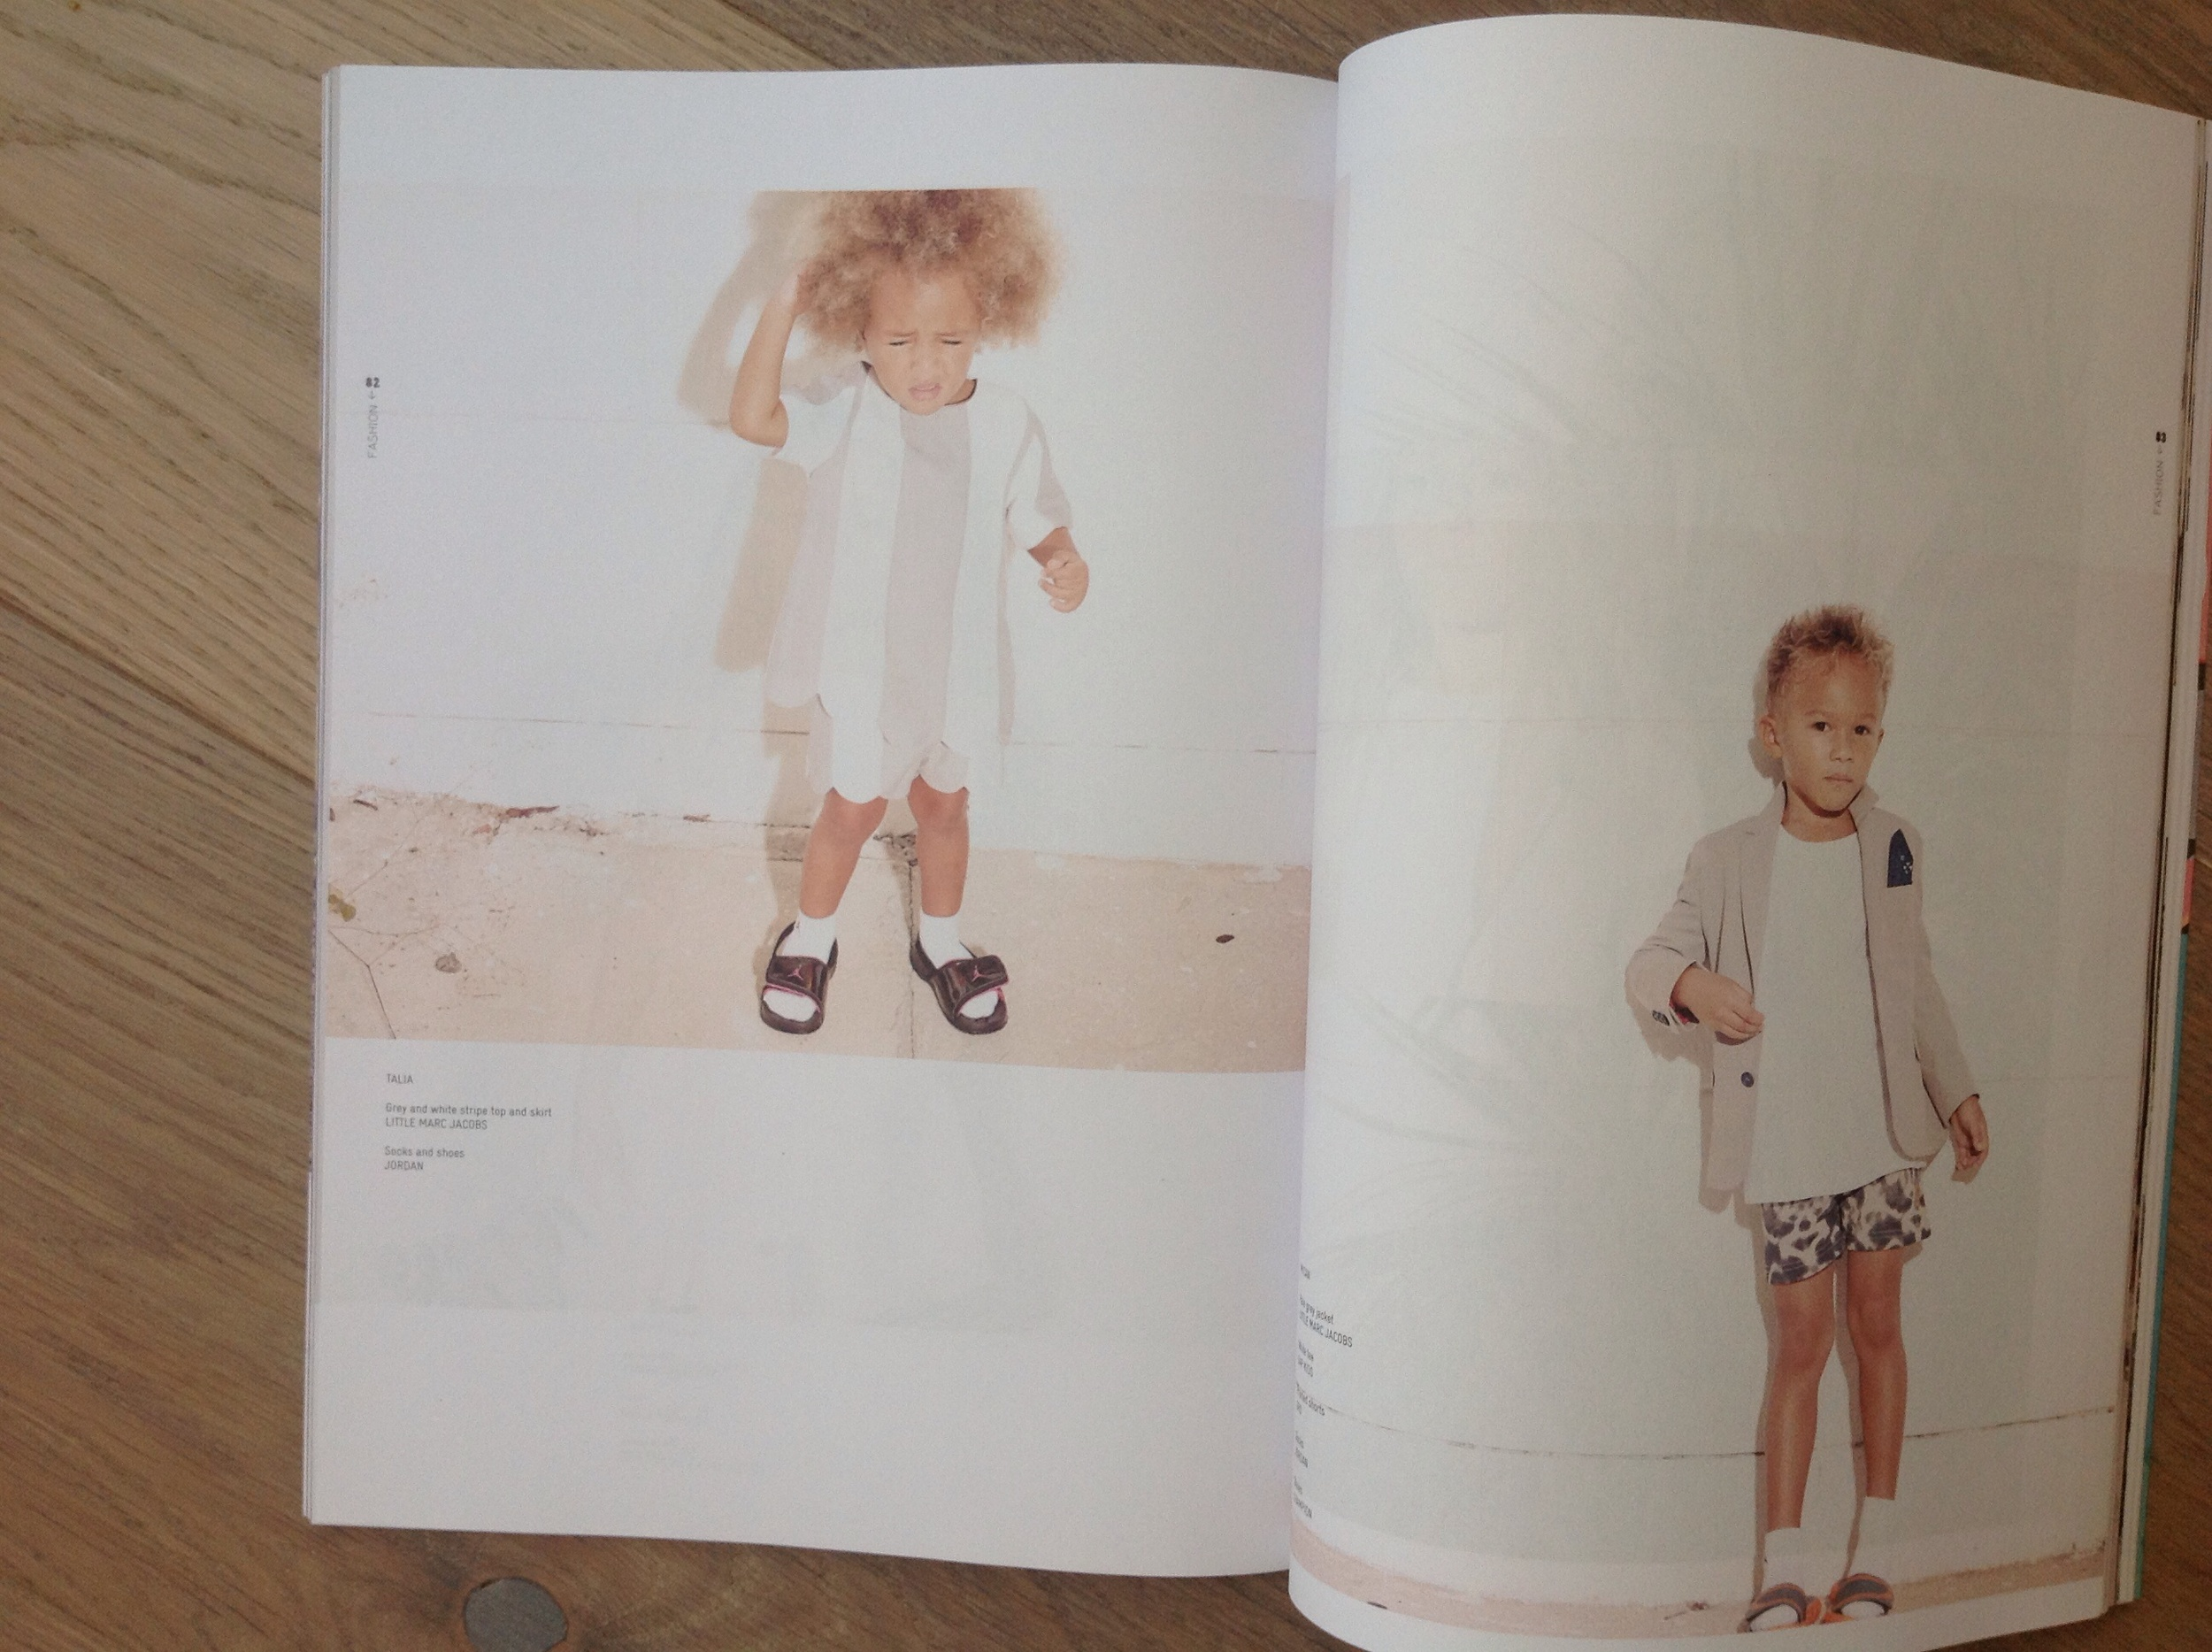 Naif magazine story styled by Ellie Lines